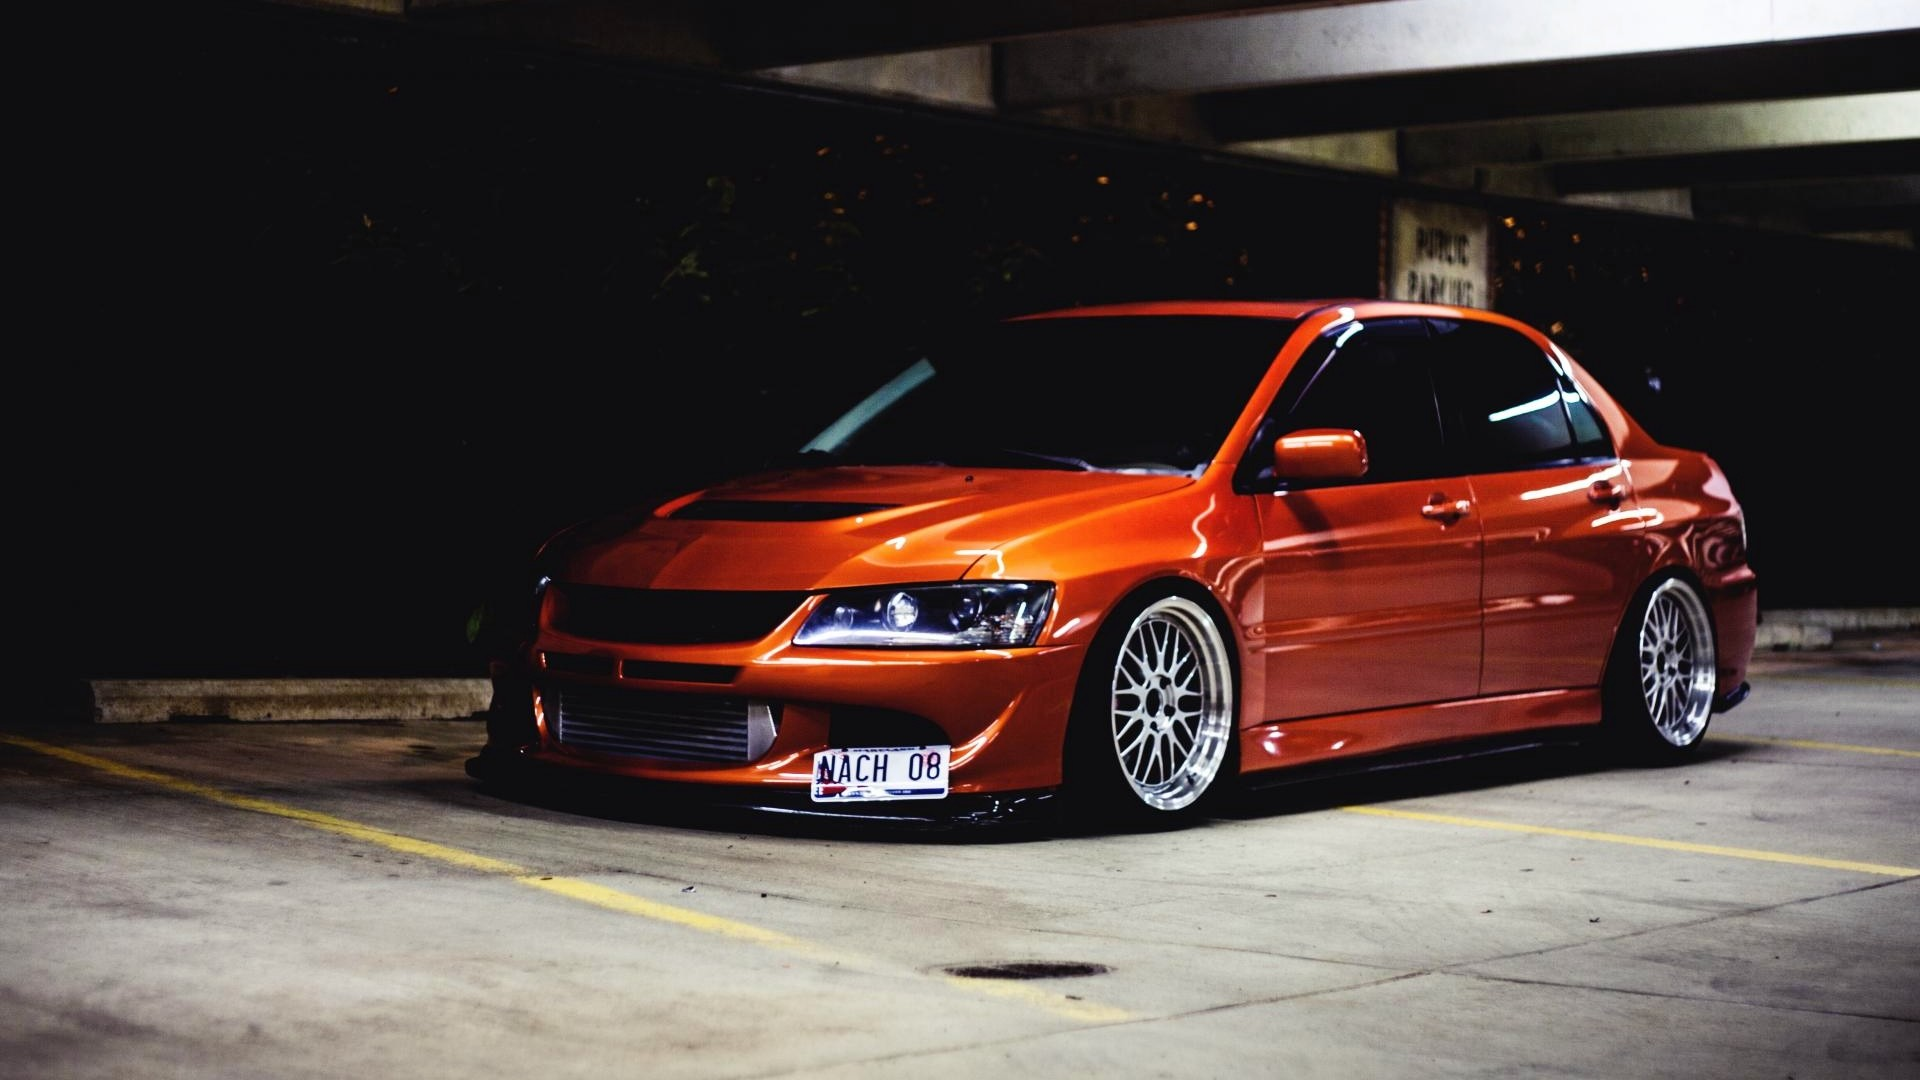 Mitsubishi Evolution Wallpaper - WallpaperSafari